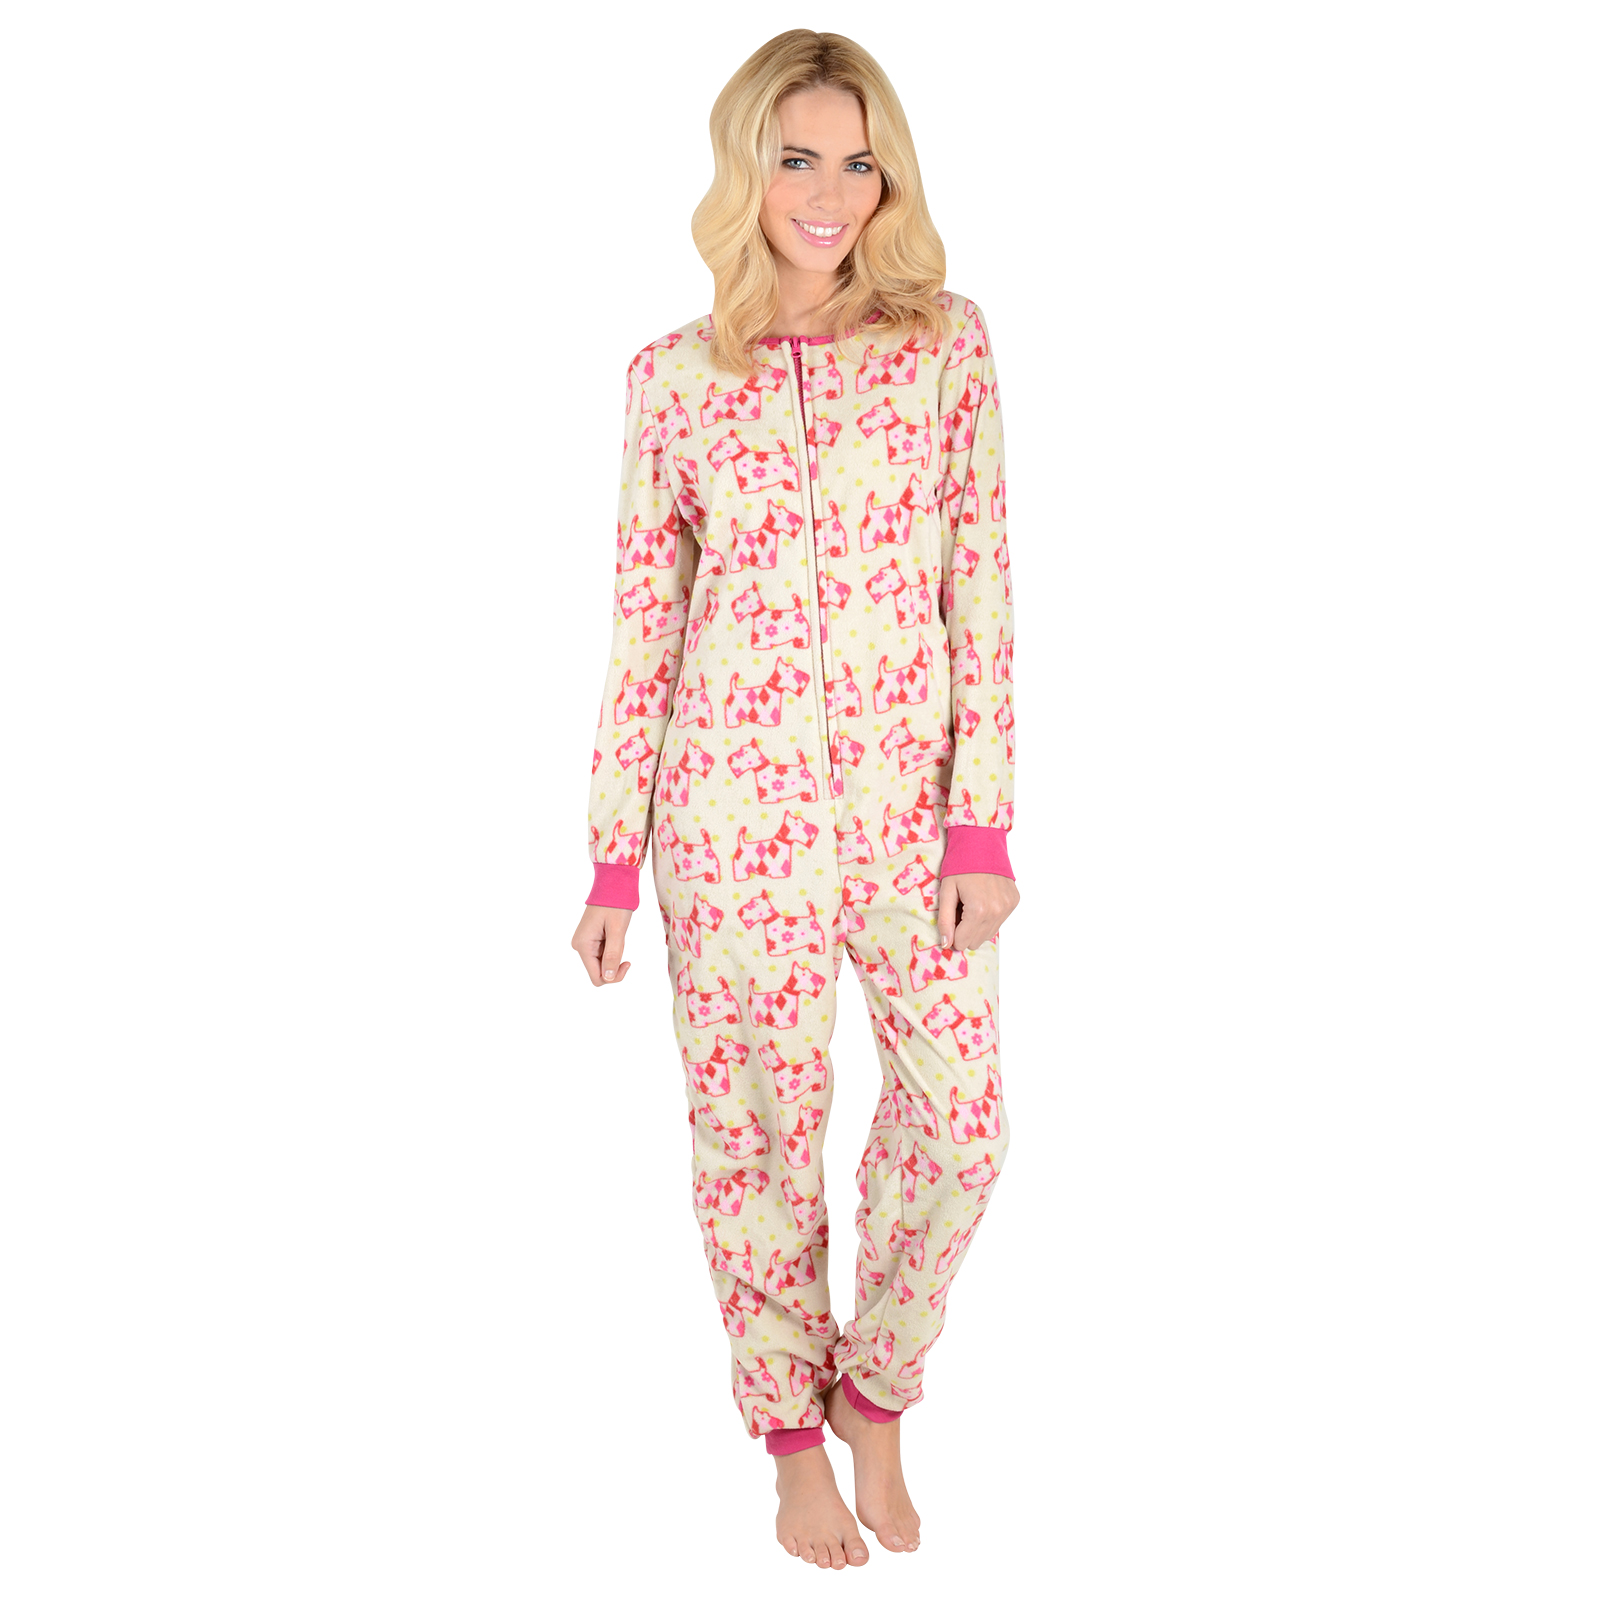 b351d2e70e216 Women's One Piece Pajamas